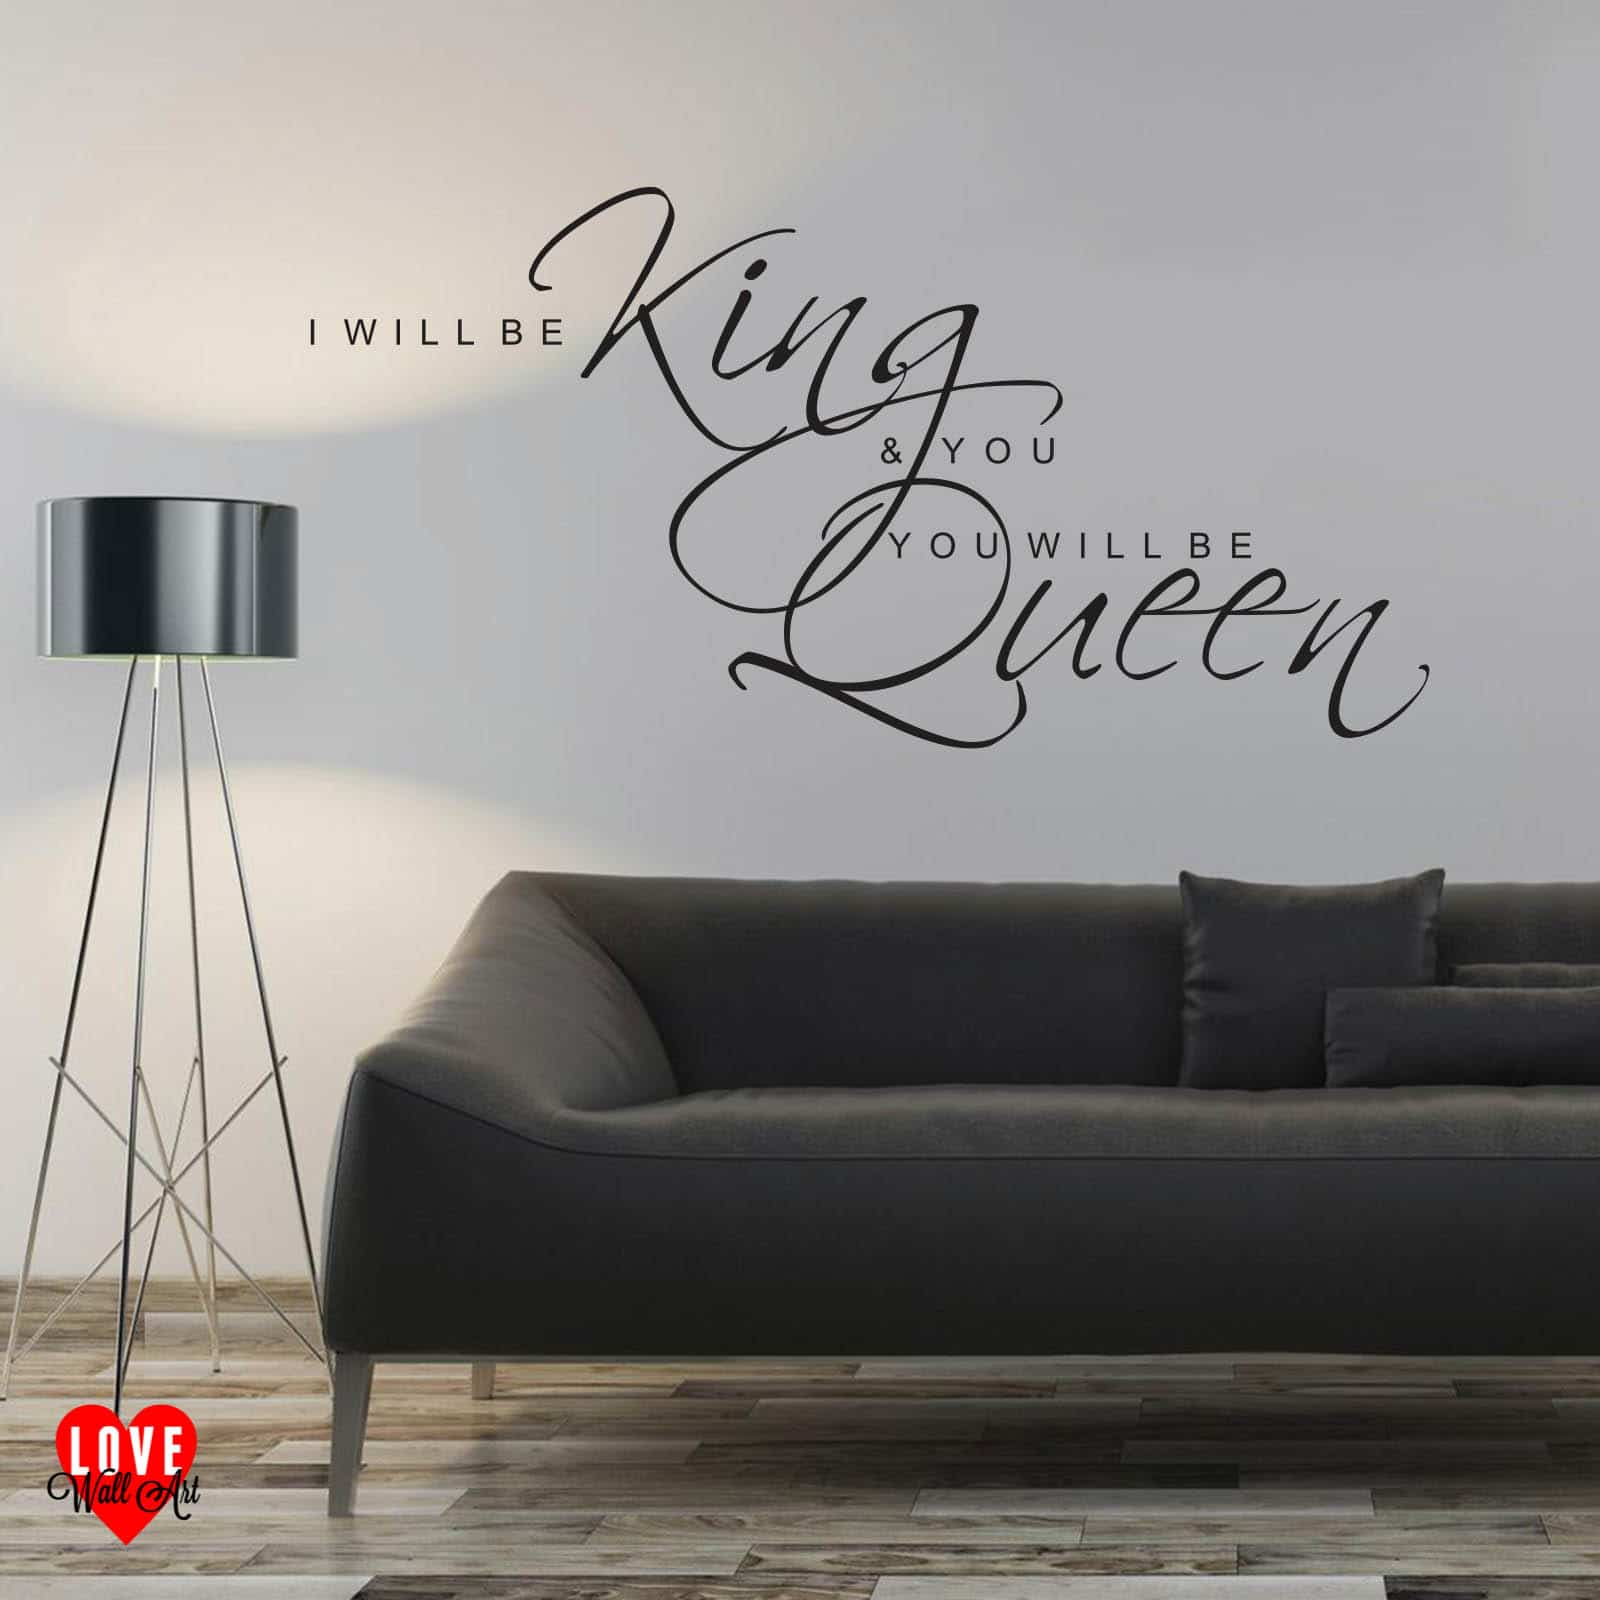 Purple And Silver Bedroom I Will Be King Heroes David Bowie Wall Art Sticker